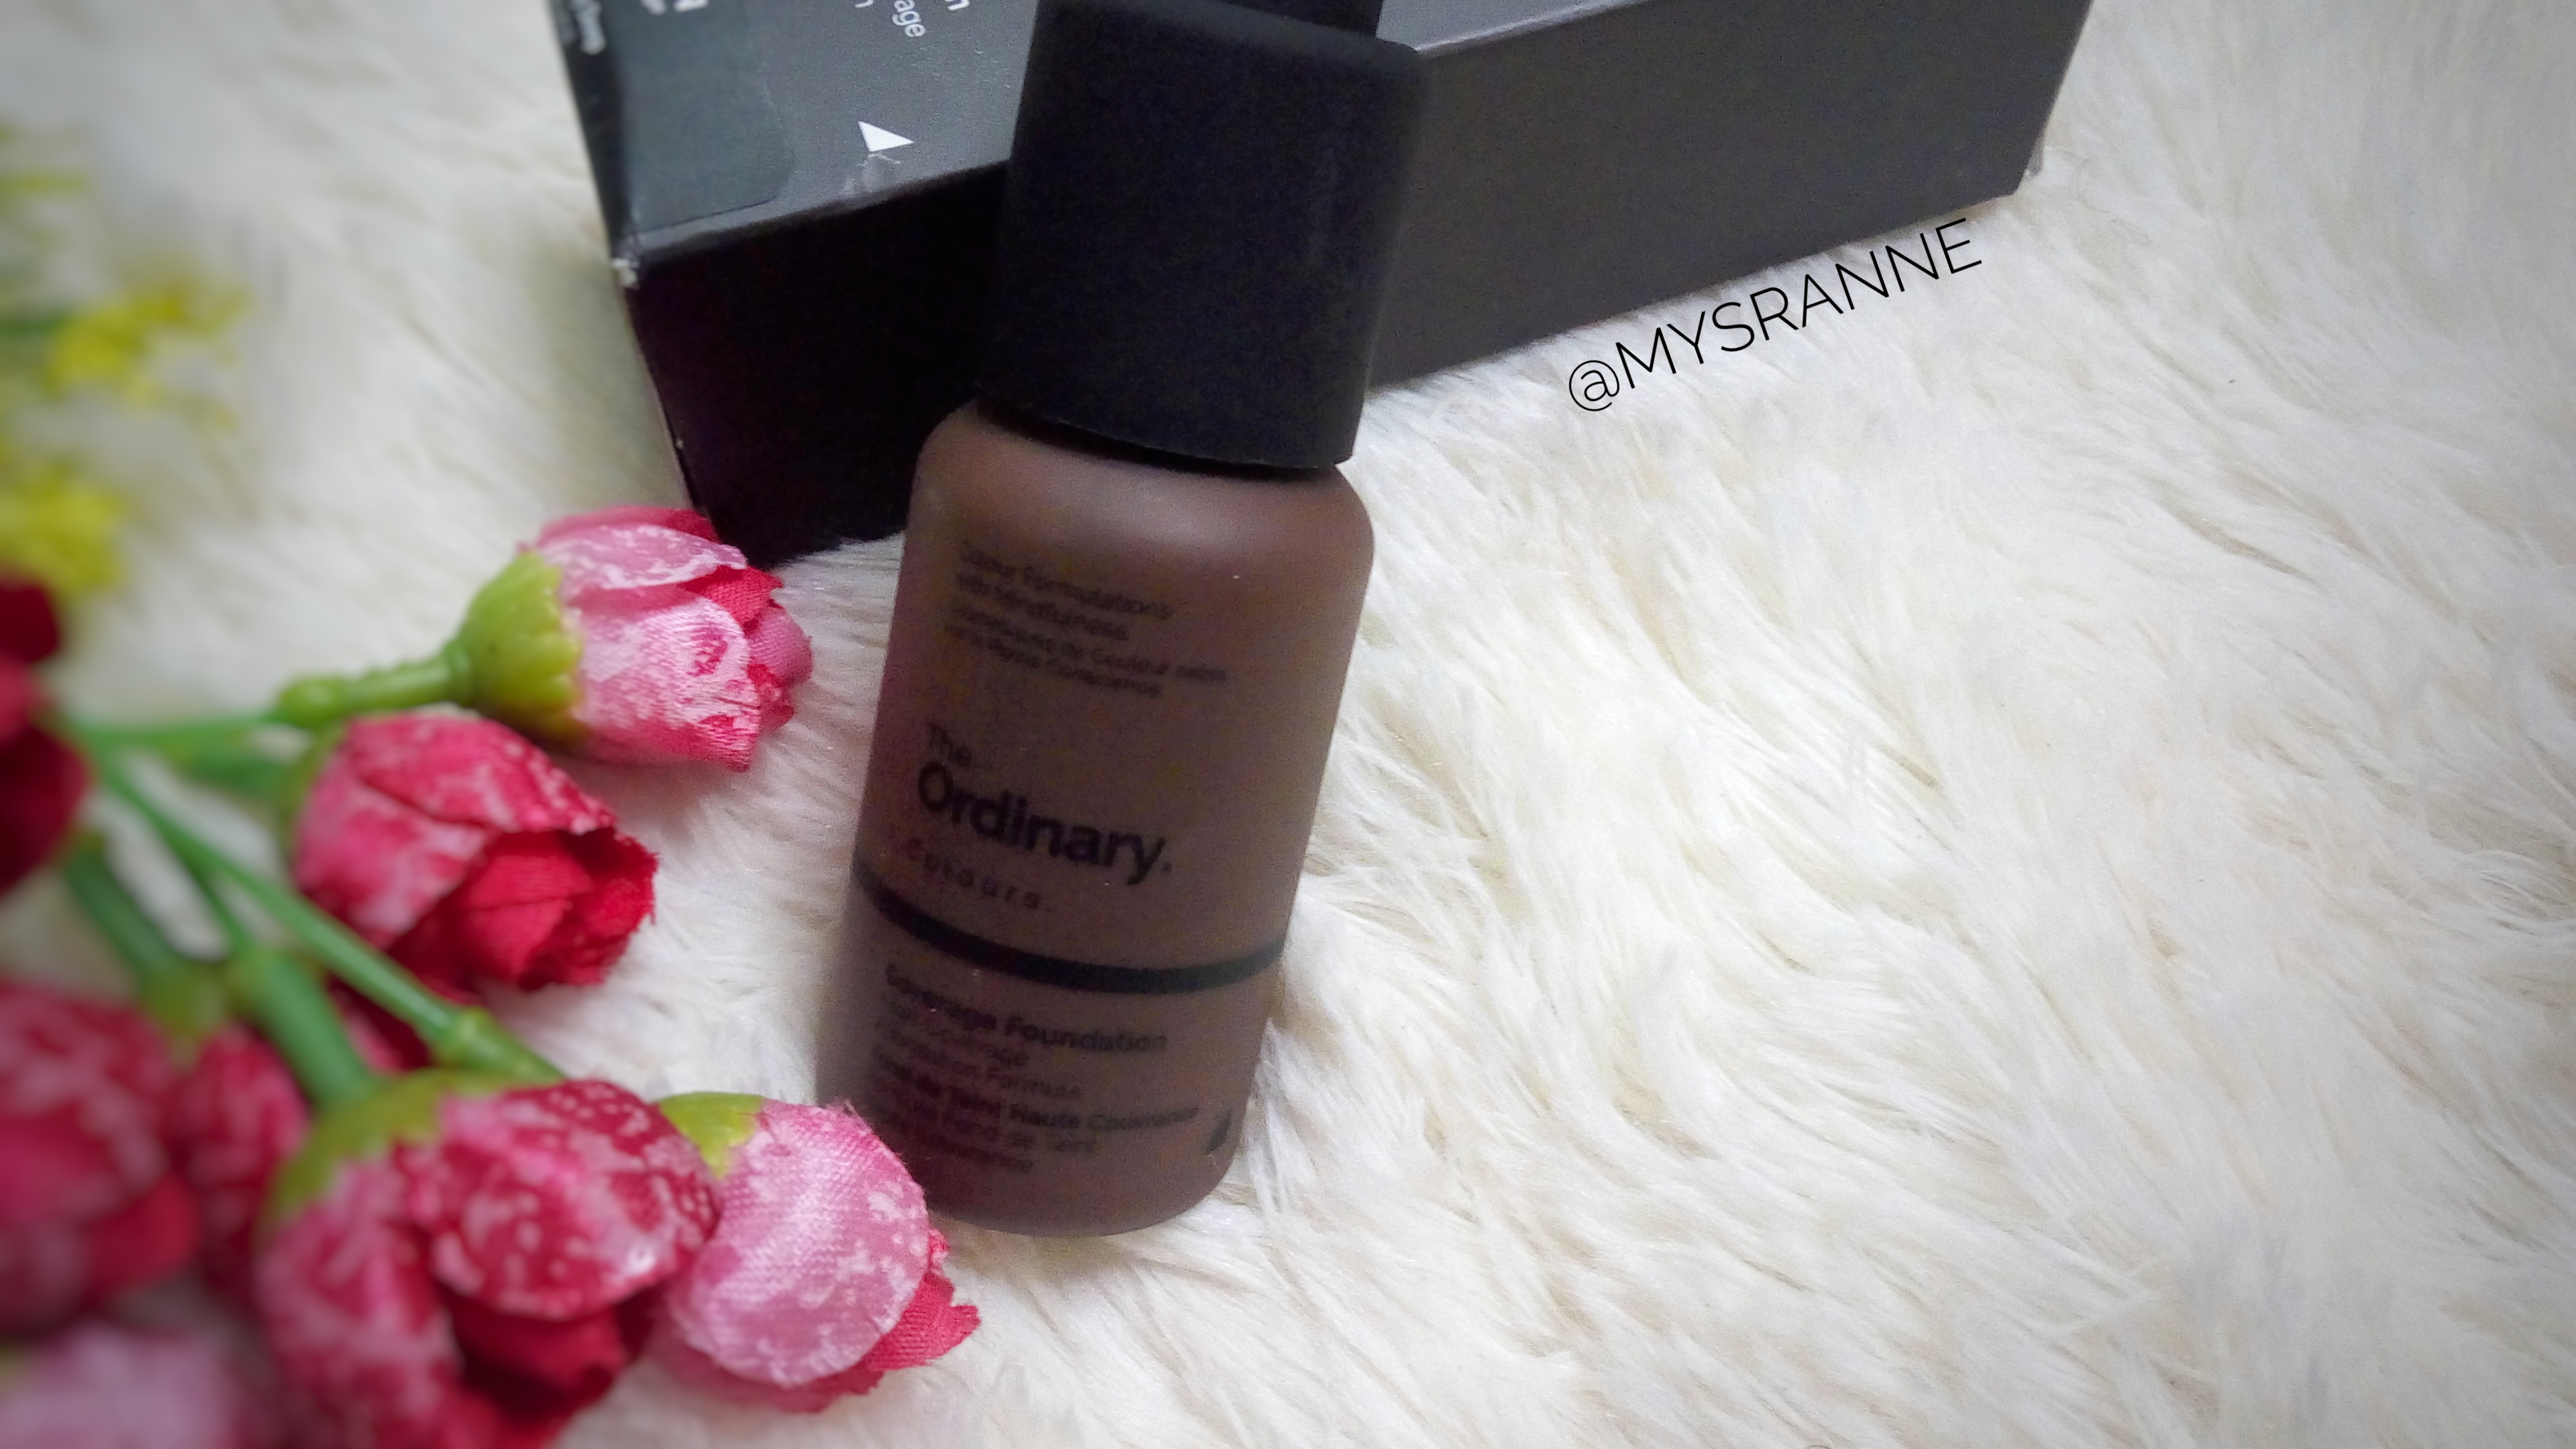 THE ORDINARY FULL COVERAGE FOUNDATION (Review)